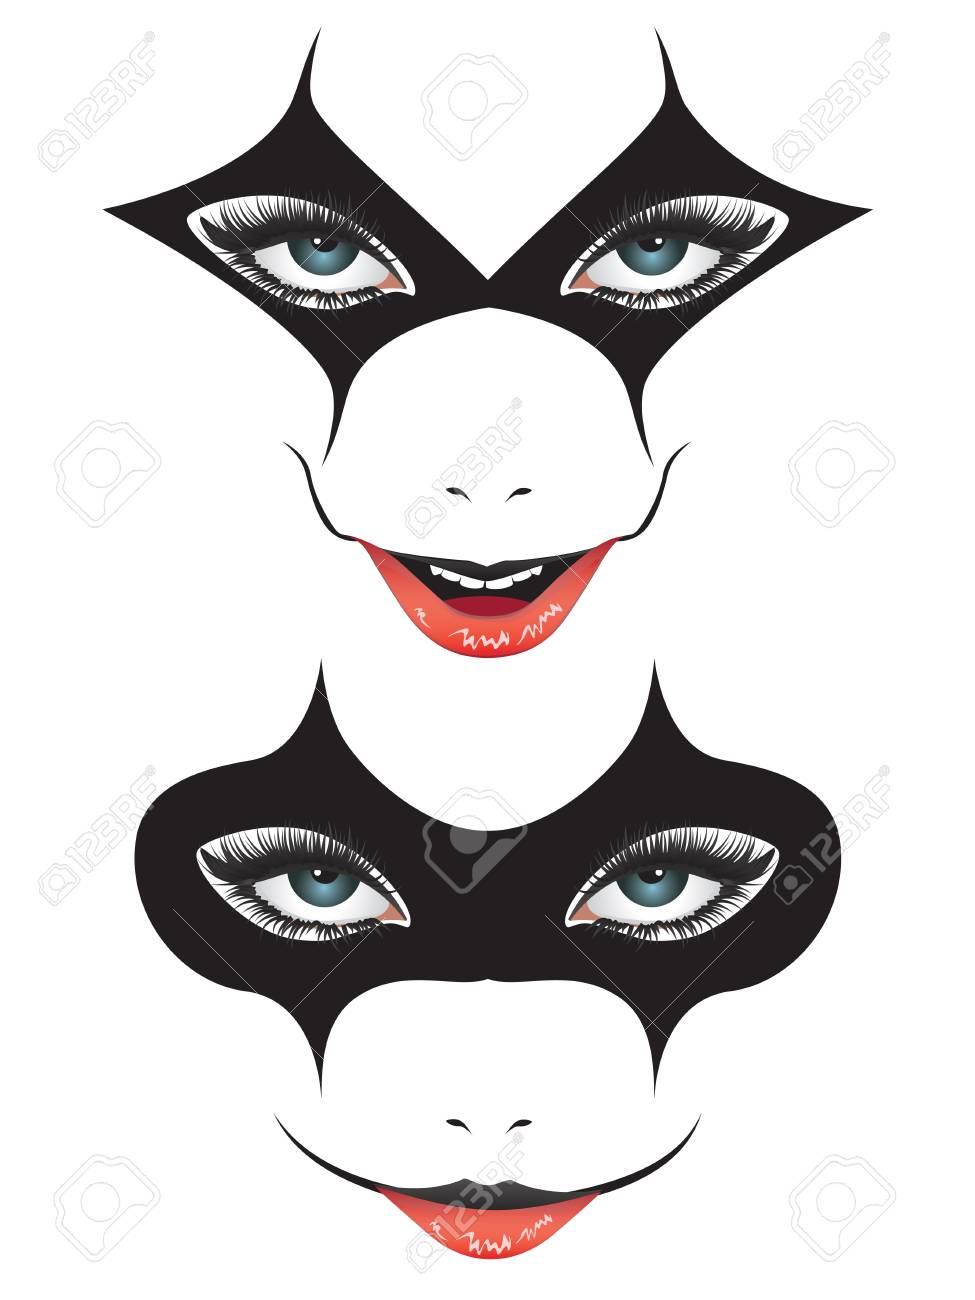 Dessin Visage Halloween.Cartoon Face With Creepy Make Up For Halloween Royalty Free Cliparts Vectors And Stock Illustration Image 89722521